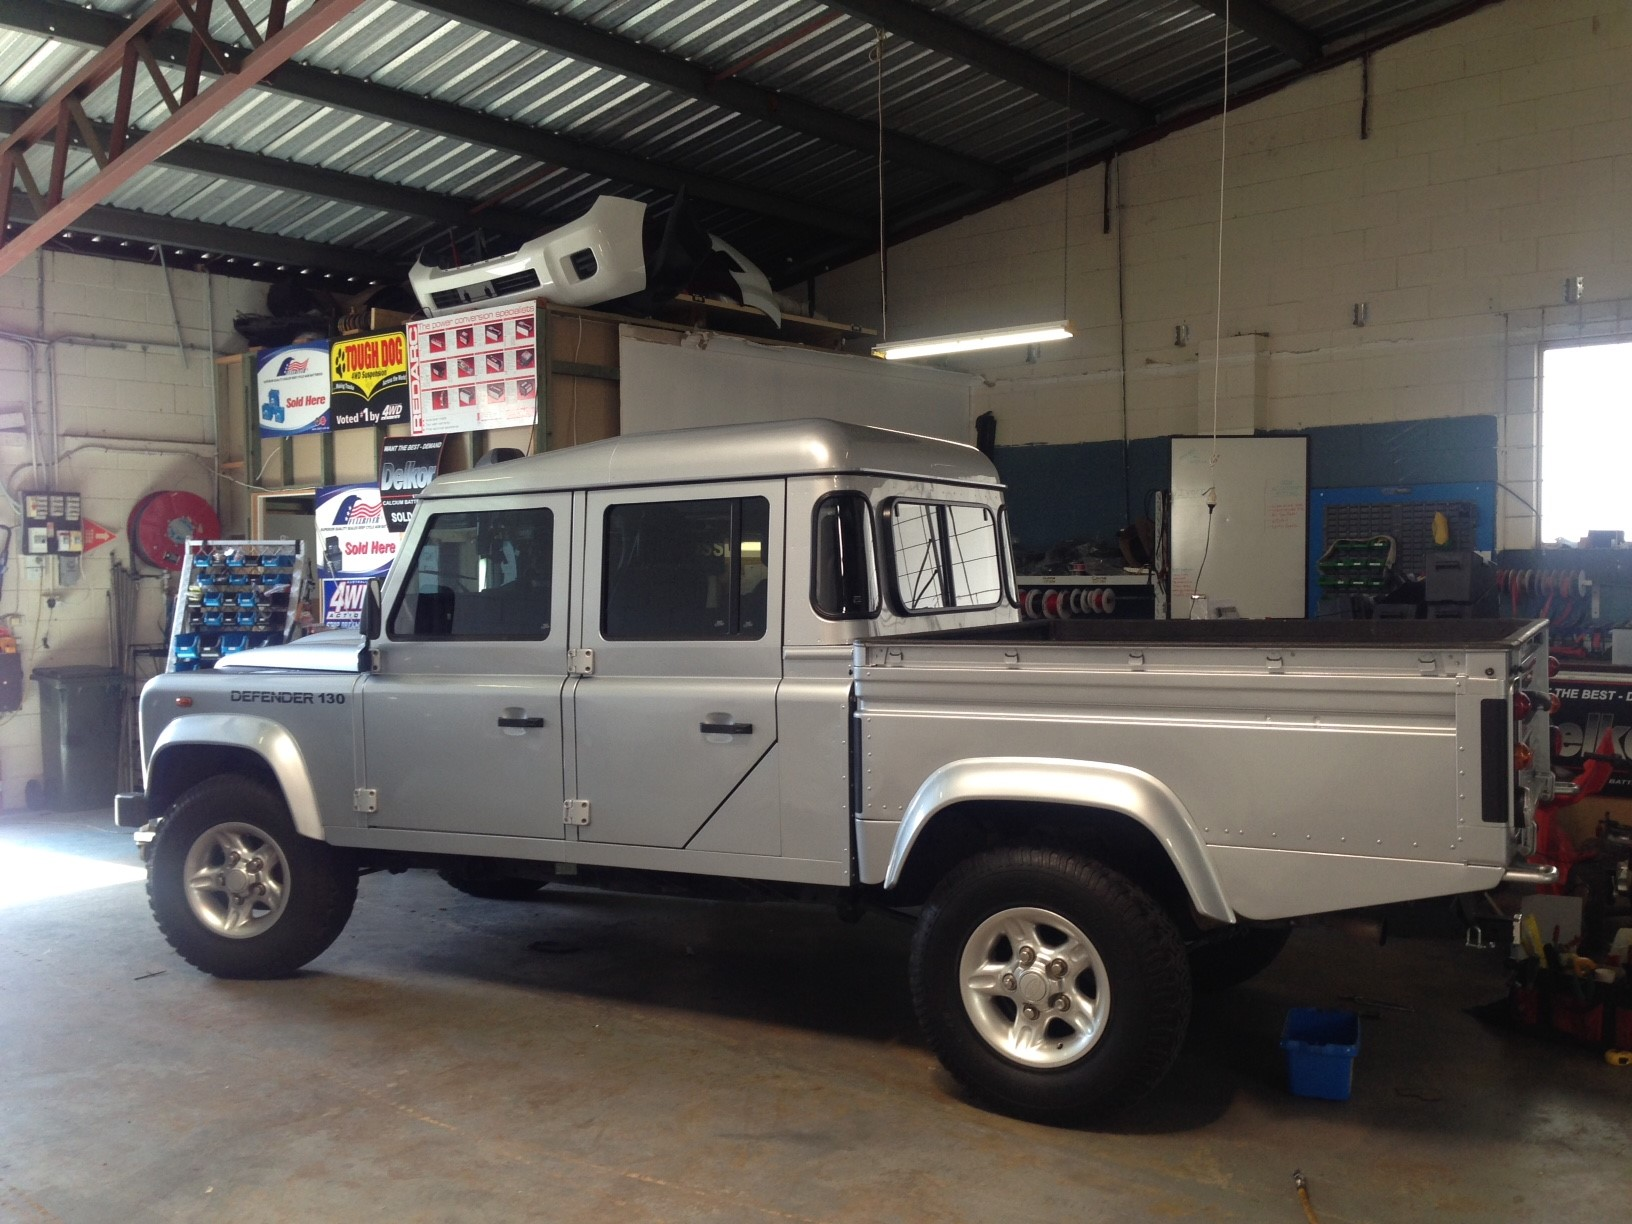 The Australian Bushman Land Rover Defender before the British Off Road treatment